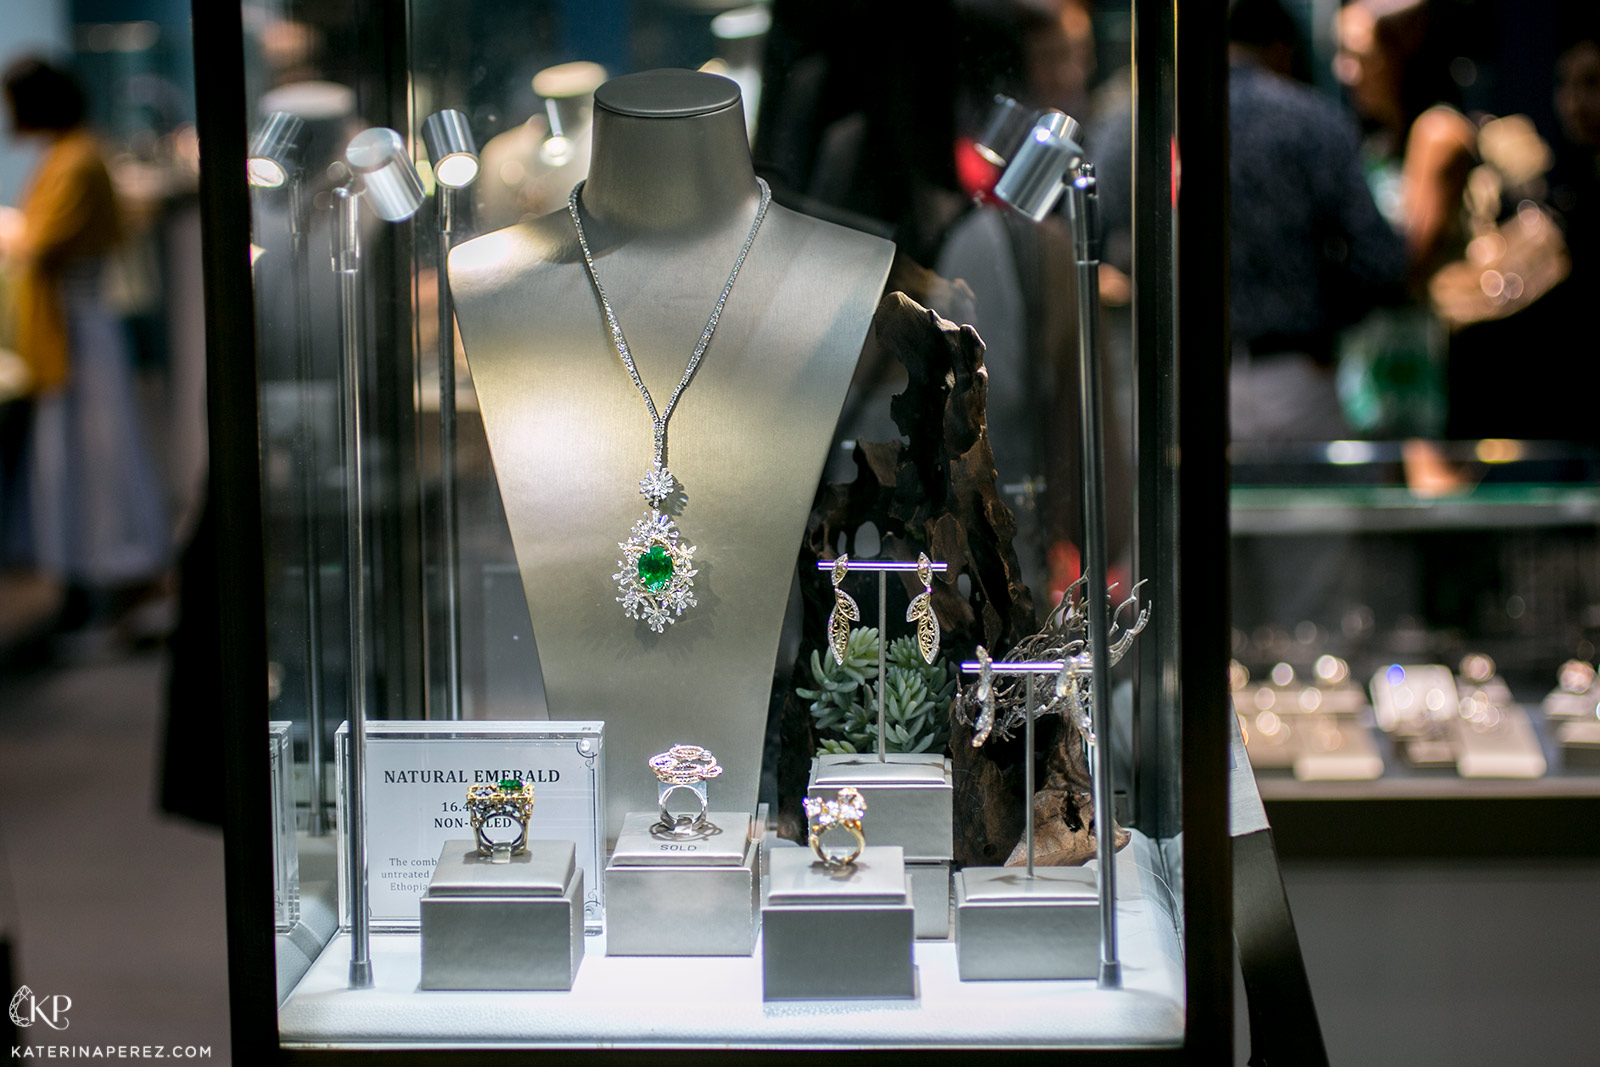 A fine jewellery display at Jeweluxe 2018